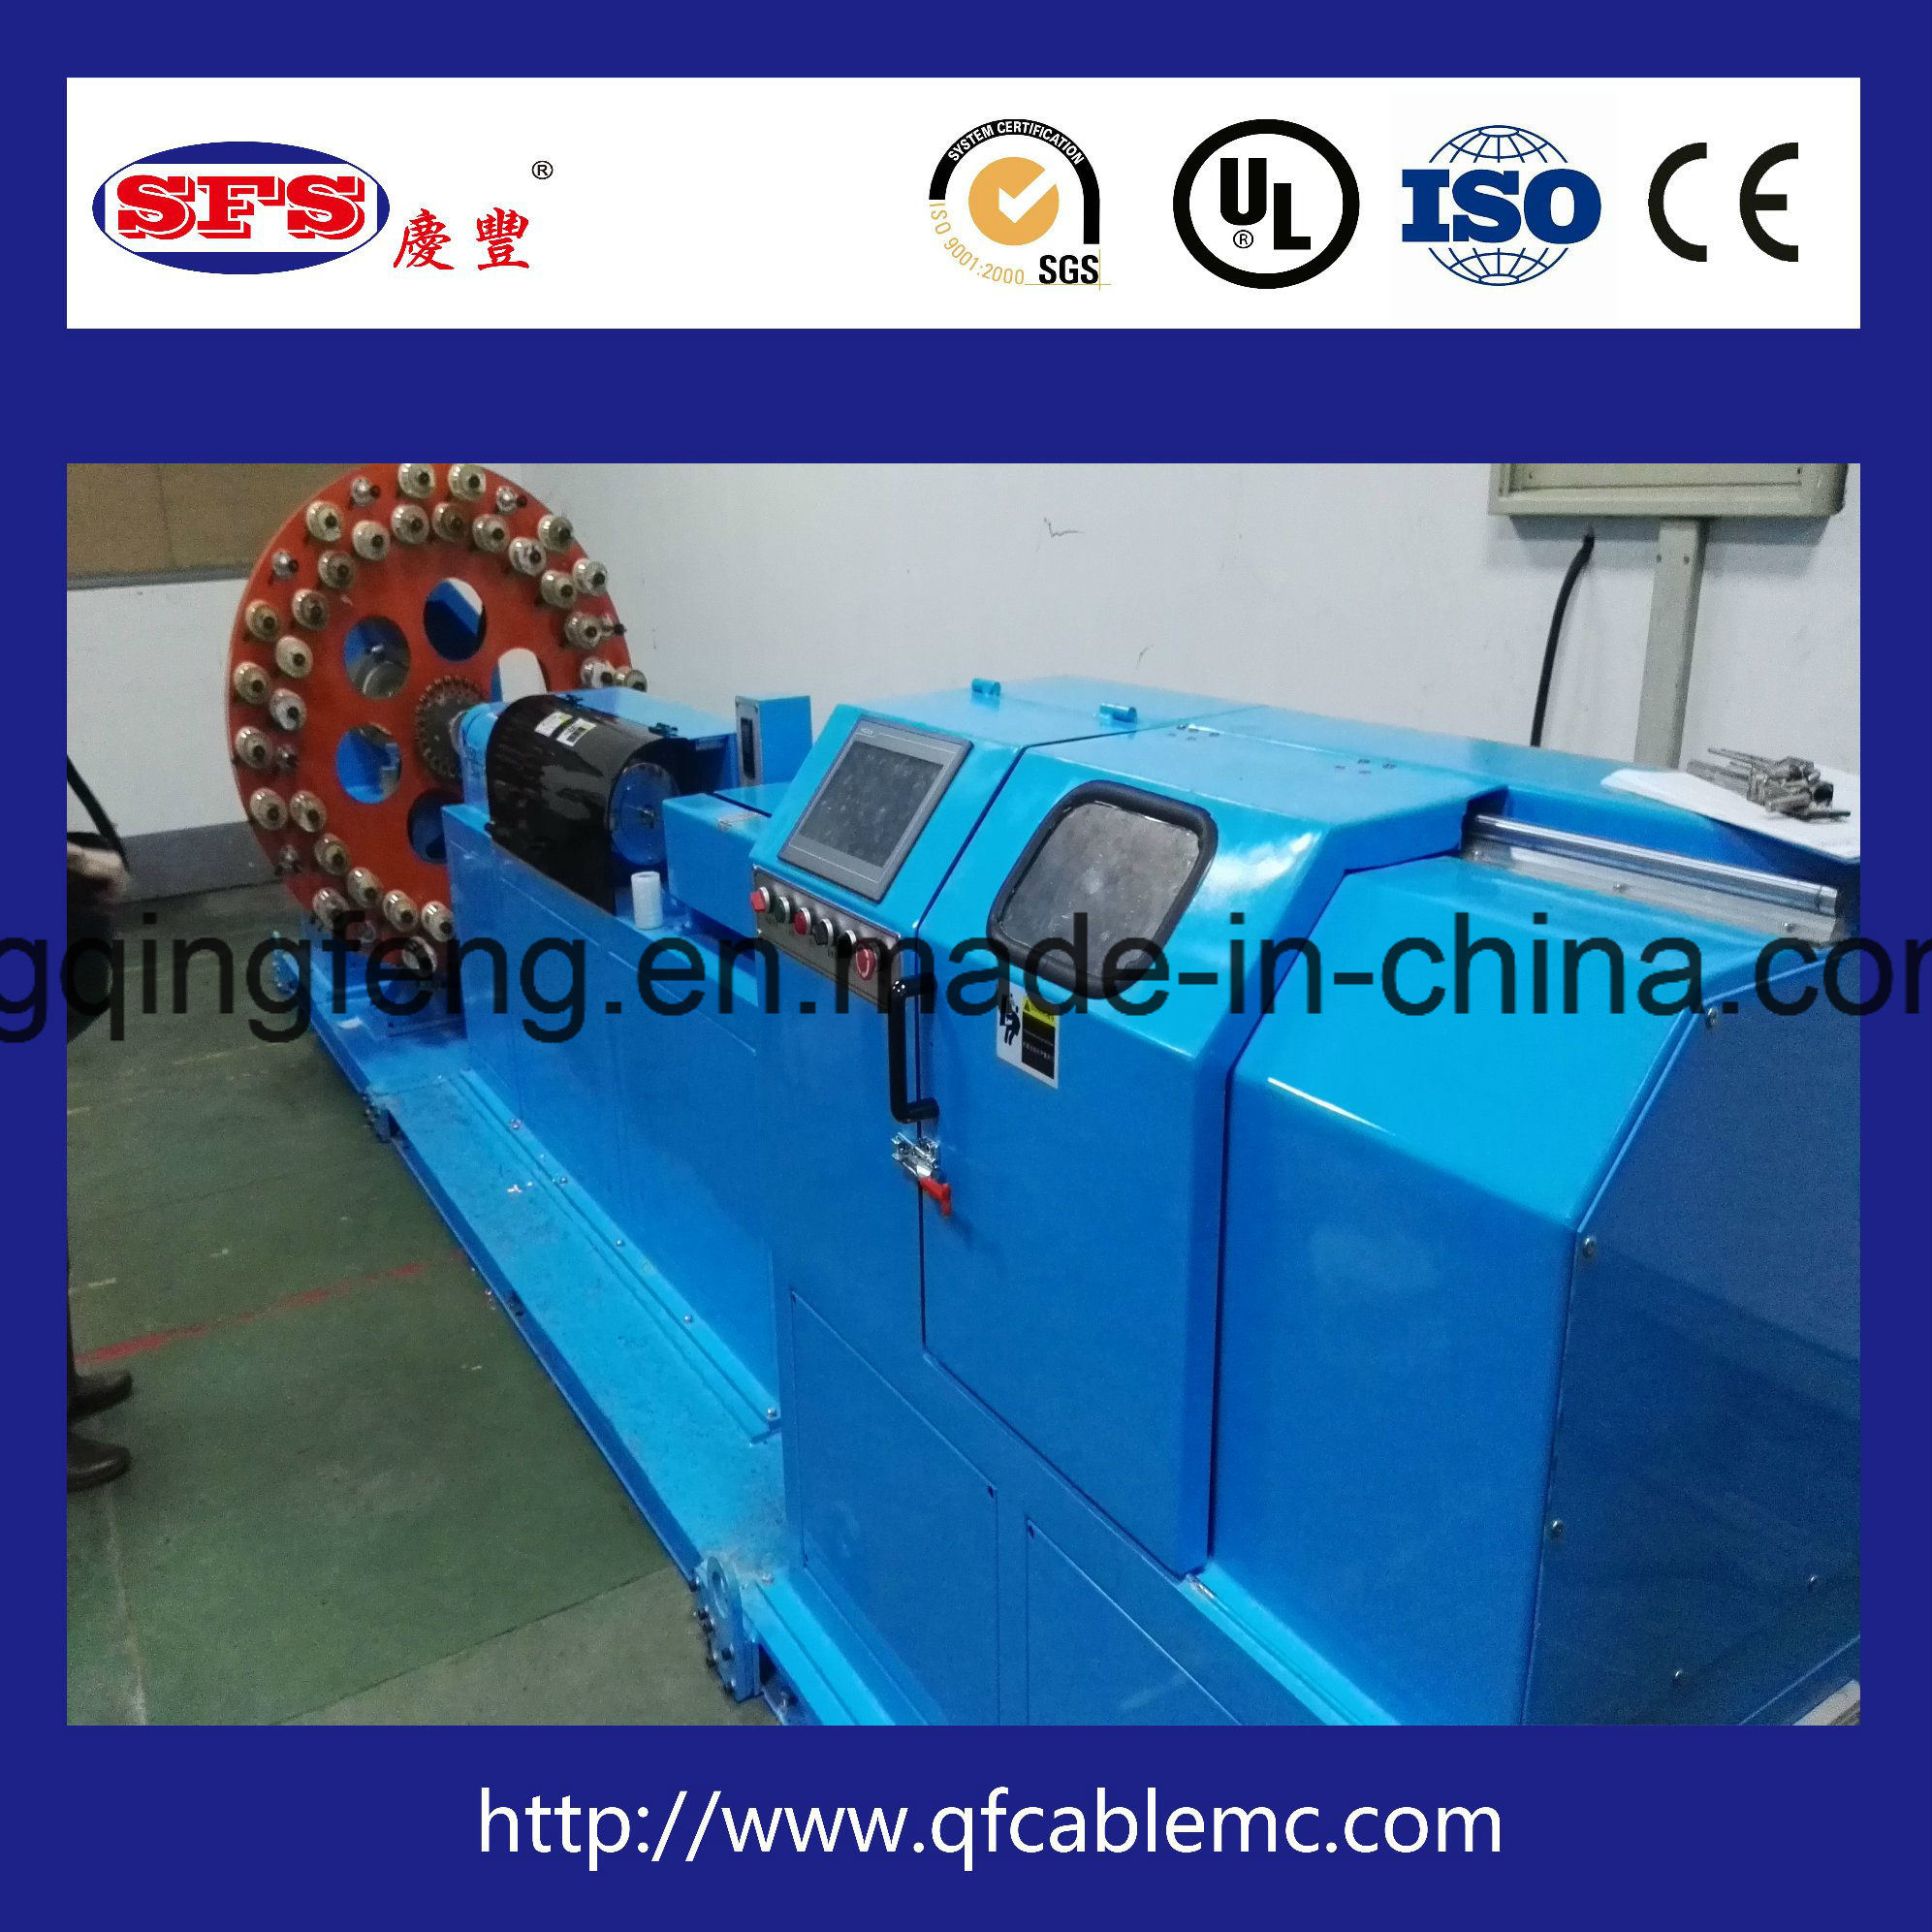 USB Cable Making Machine Wrapping Machine, Wrapping Equipment